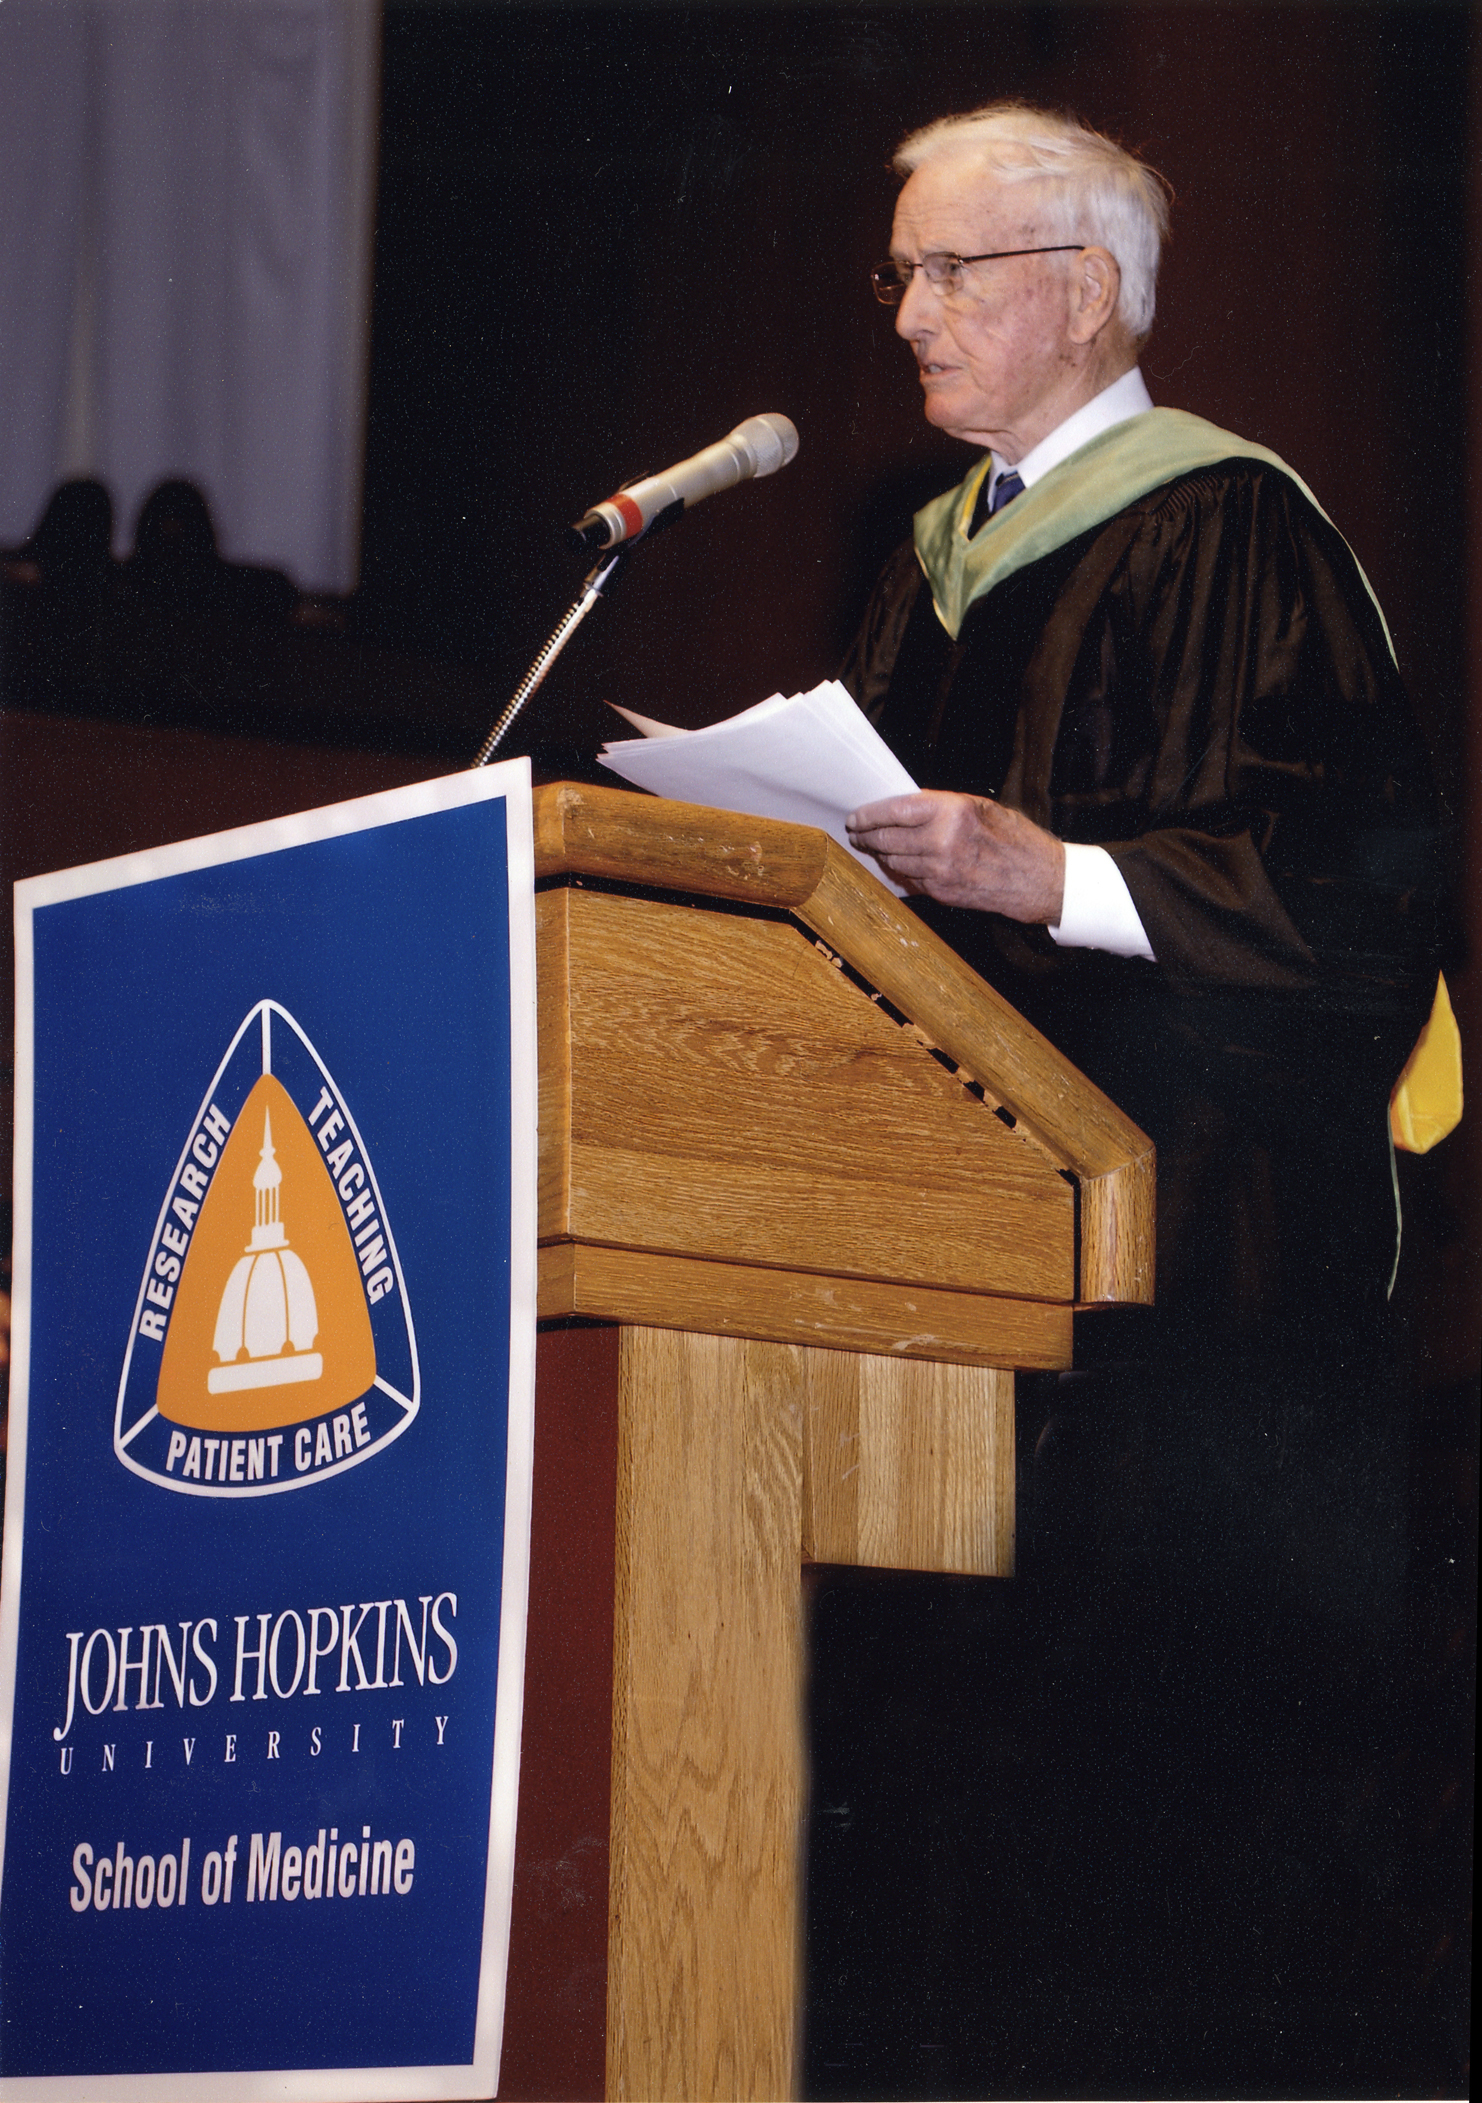 Dr. Cooley giving the commencement address at the Johns Hopkins Medical School in May 2009.